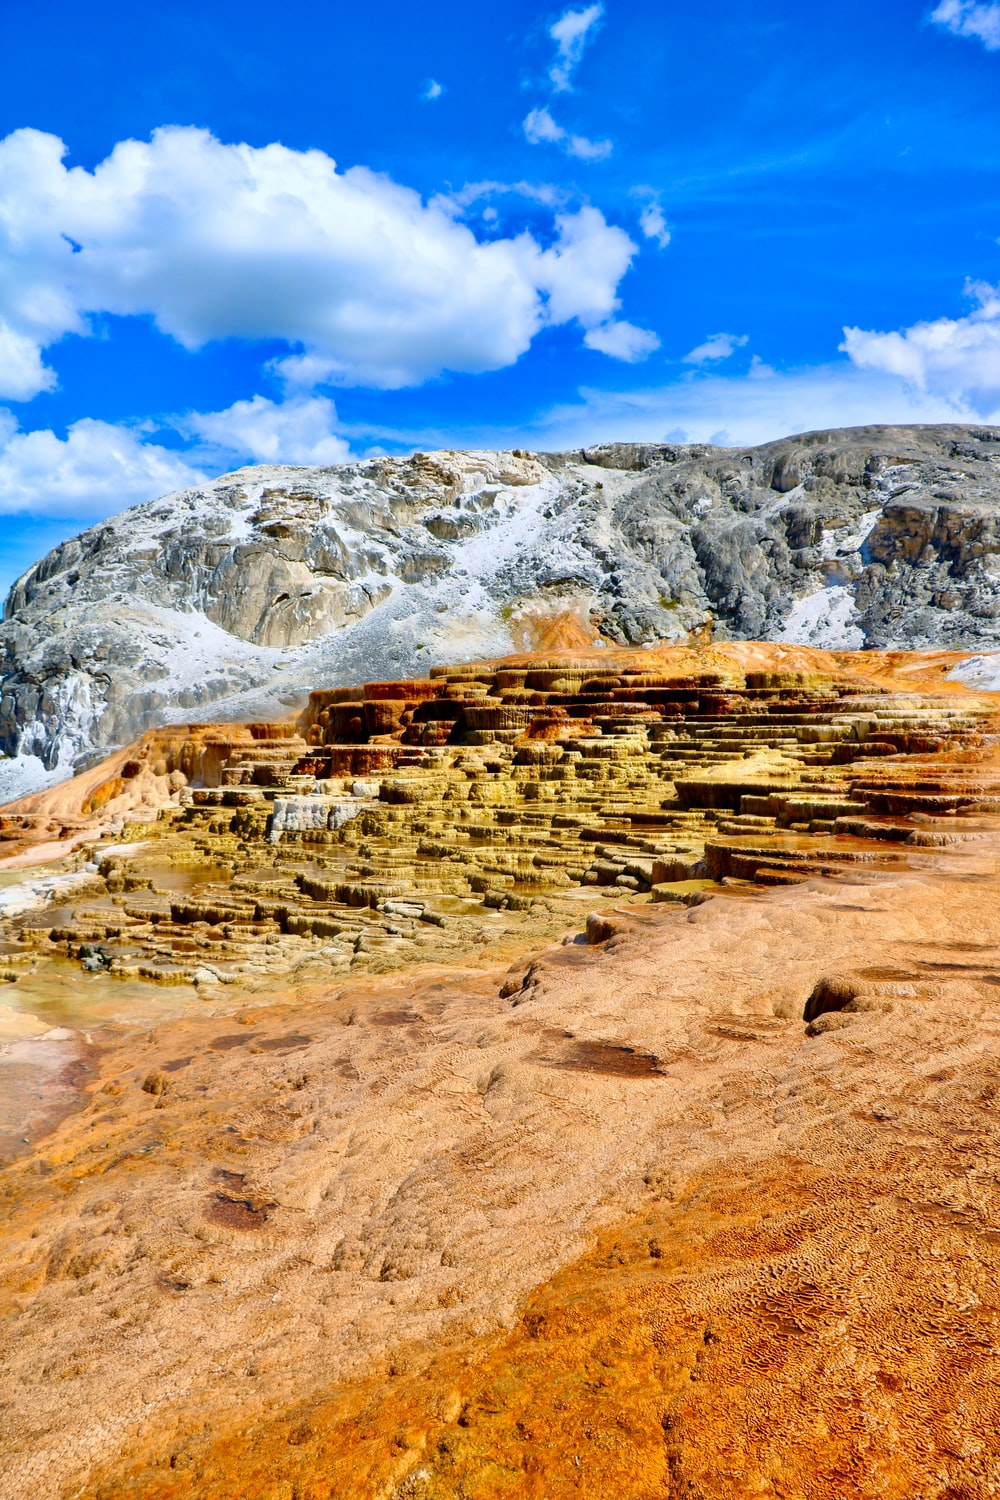 rocky mountain under blue sky during daytime